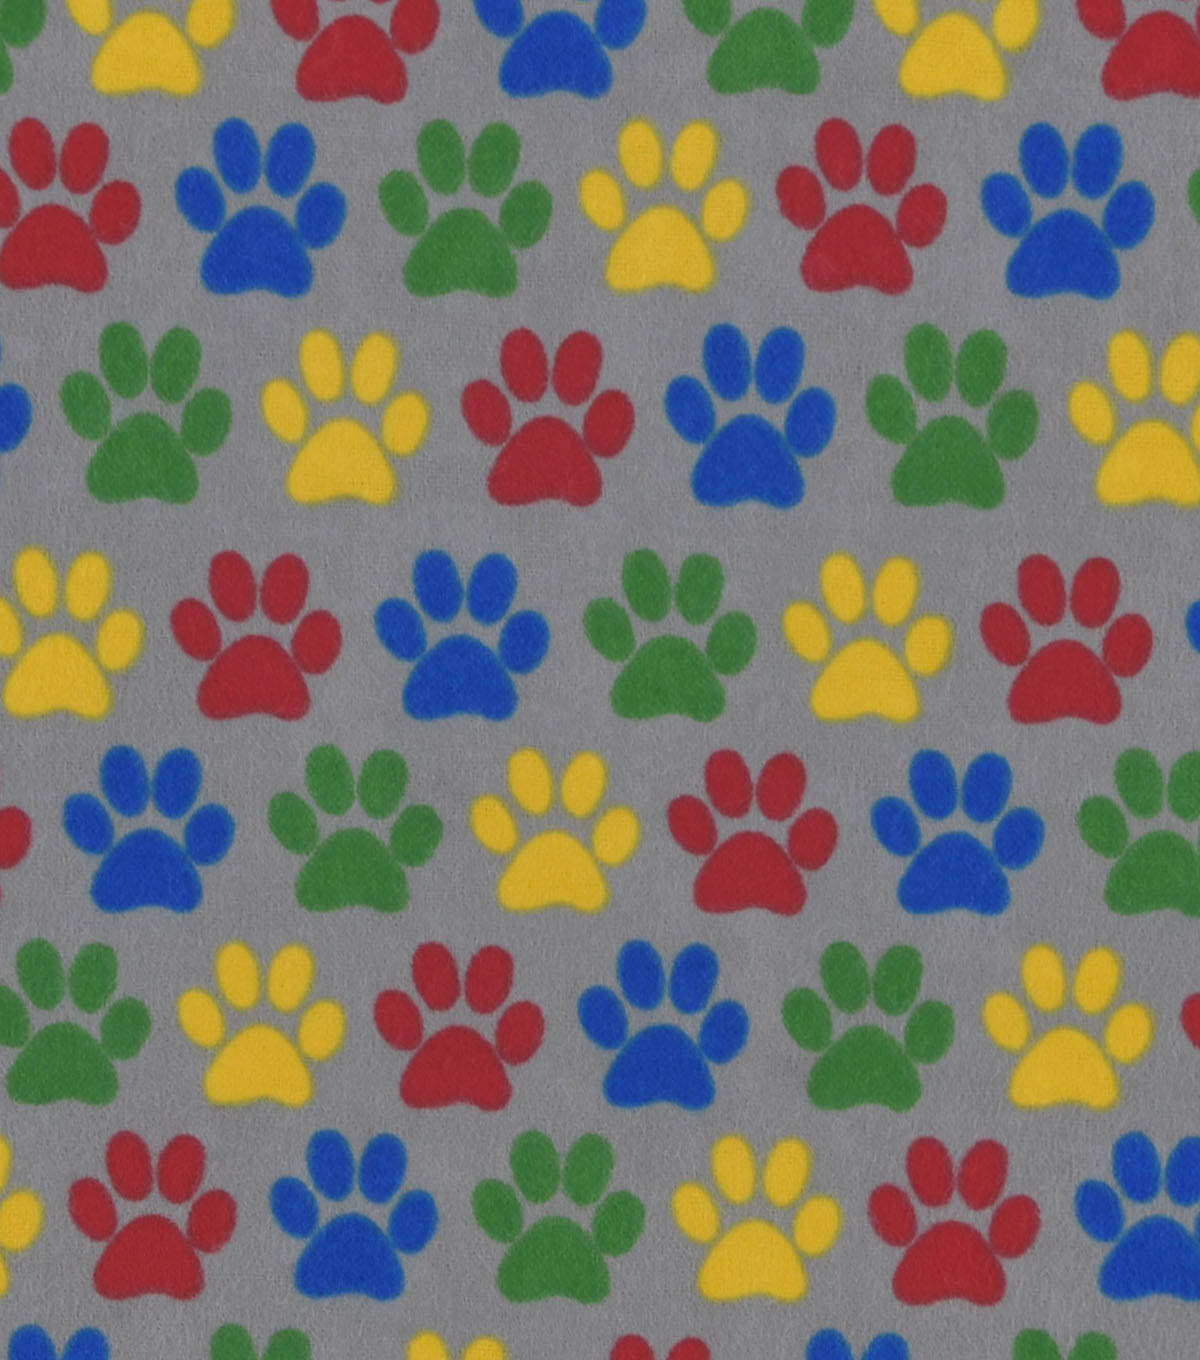 Snuggle Flannel Fabric -Bright Paw Prints